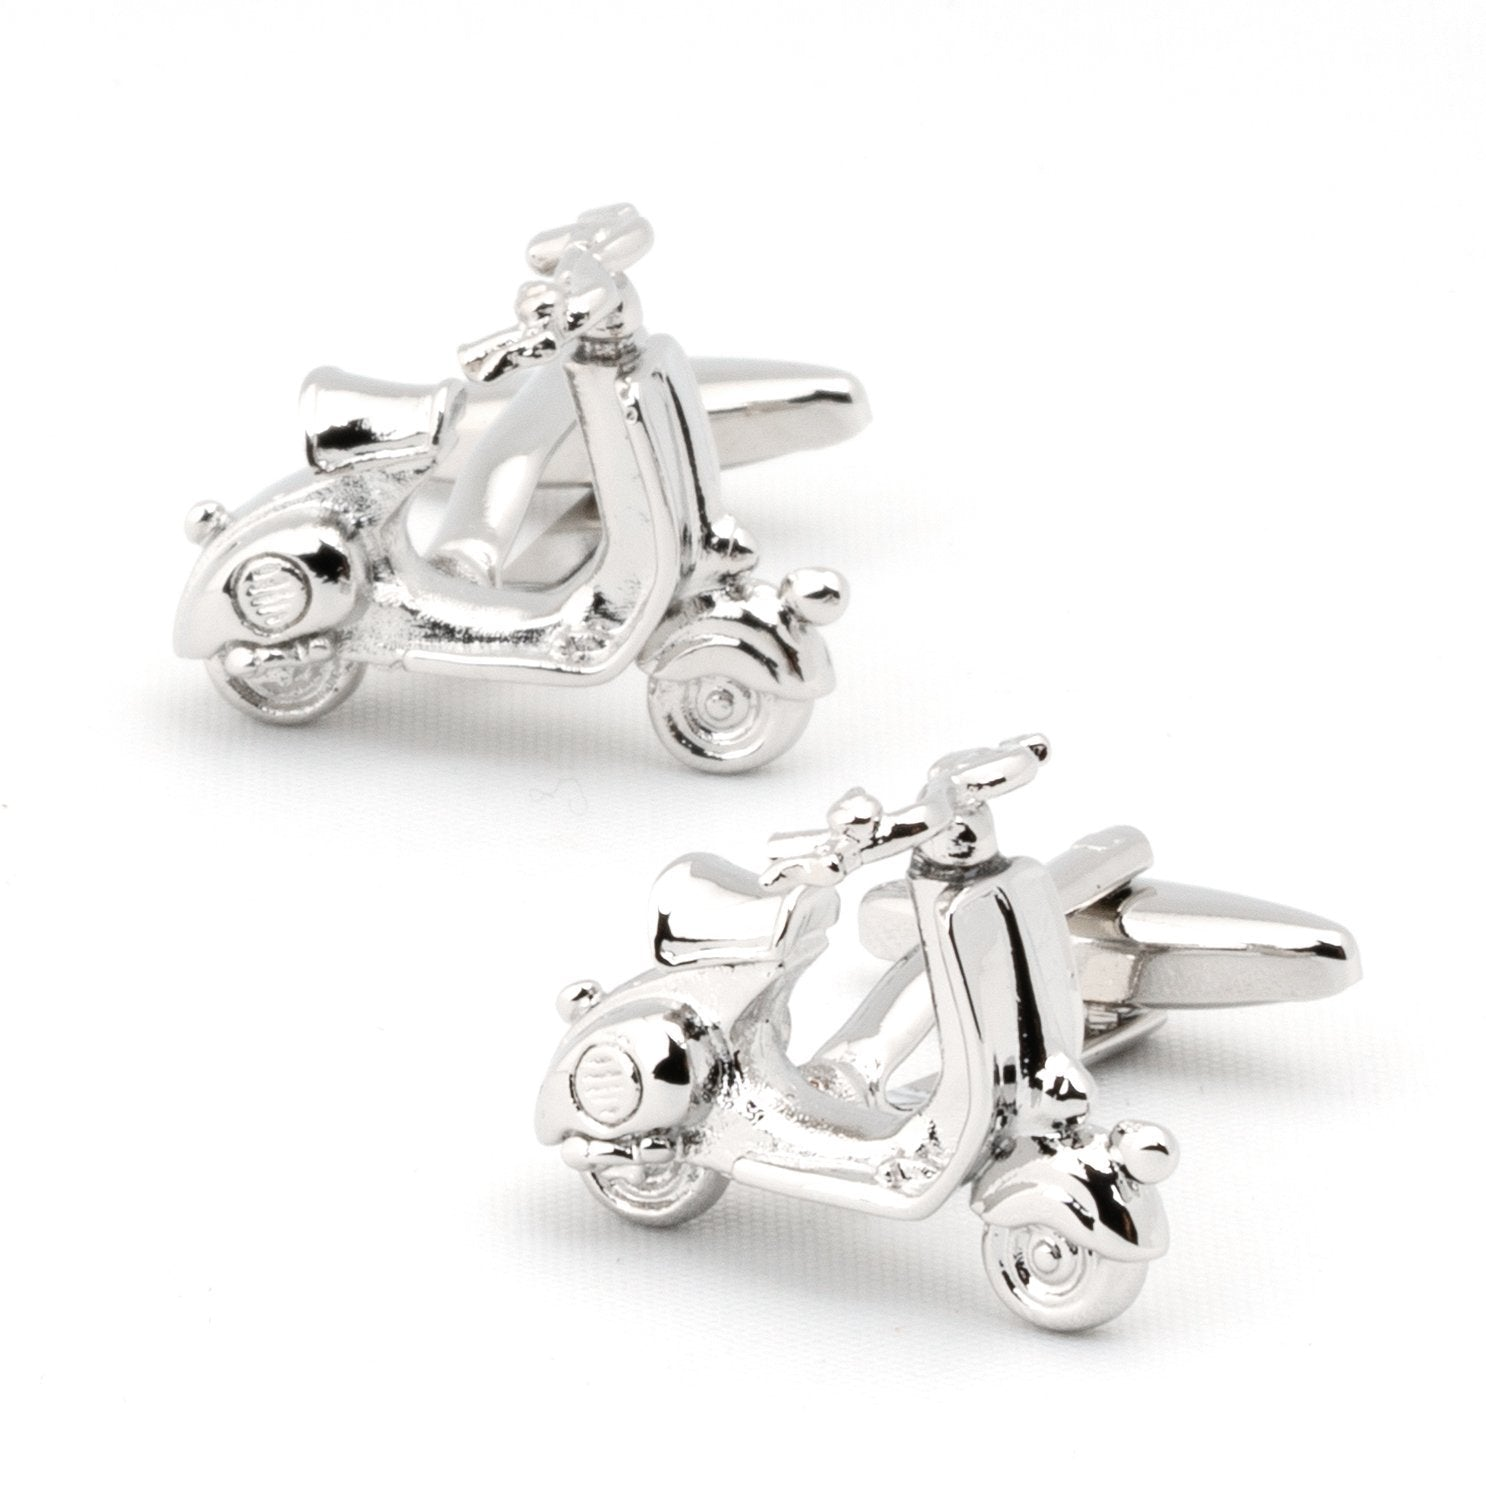 Silver 3D Vespa Scooter Cufflinks Novelty Cufflinks Clinks Australia Silver 3D Vespa Scooter Cufflinks